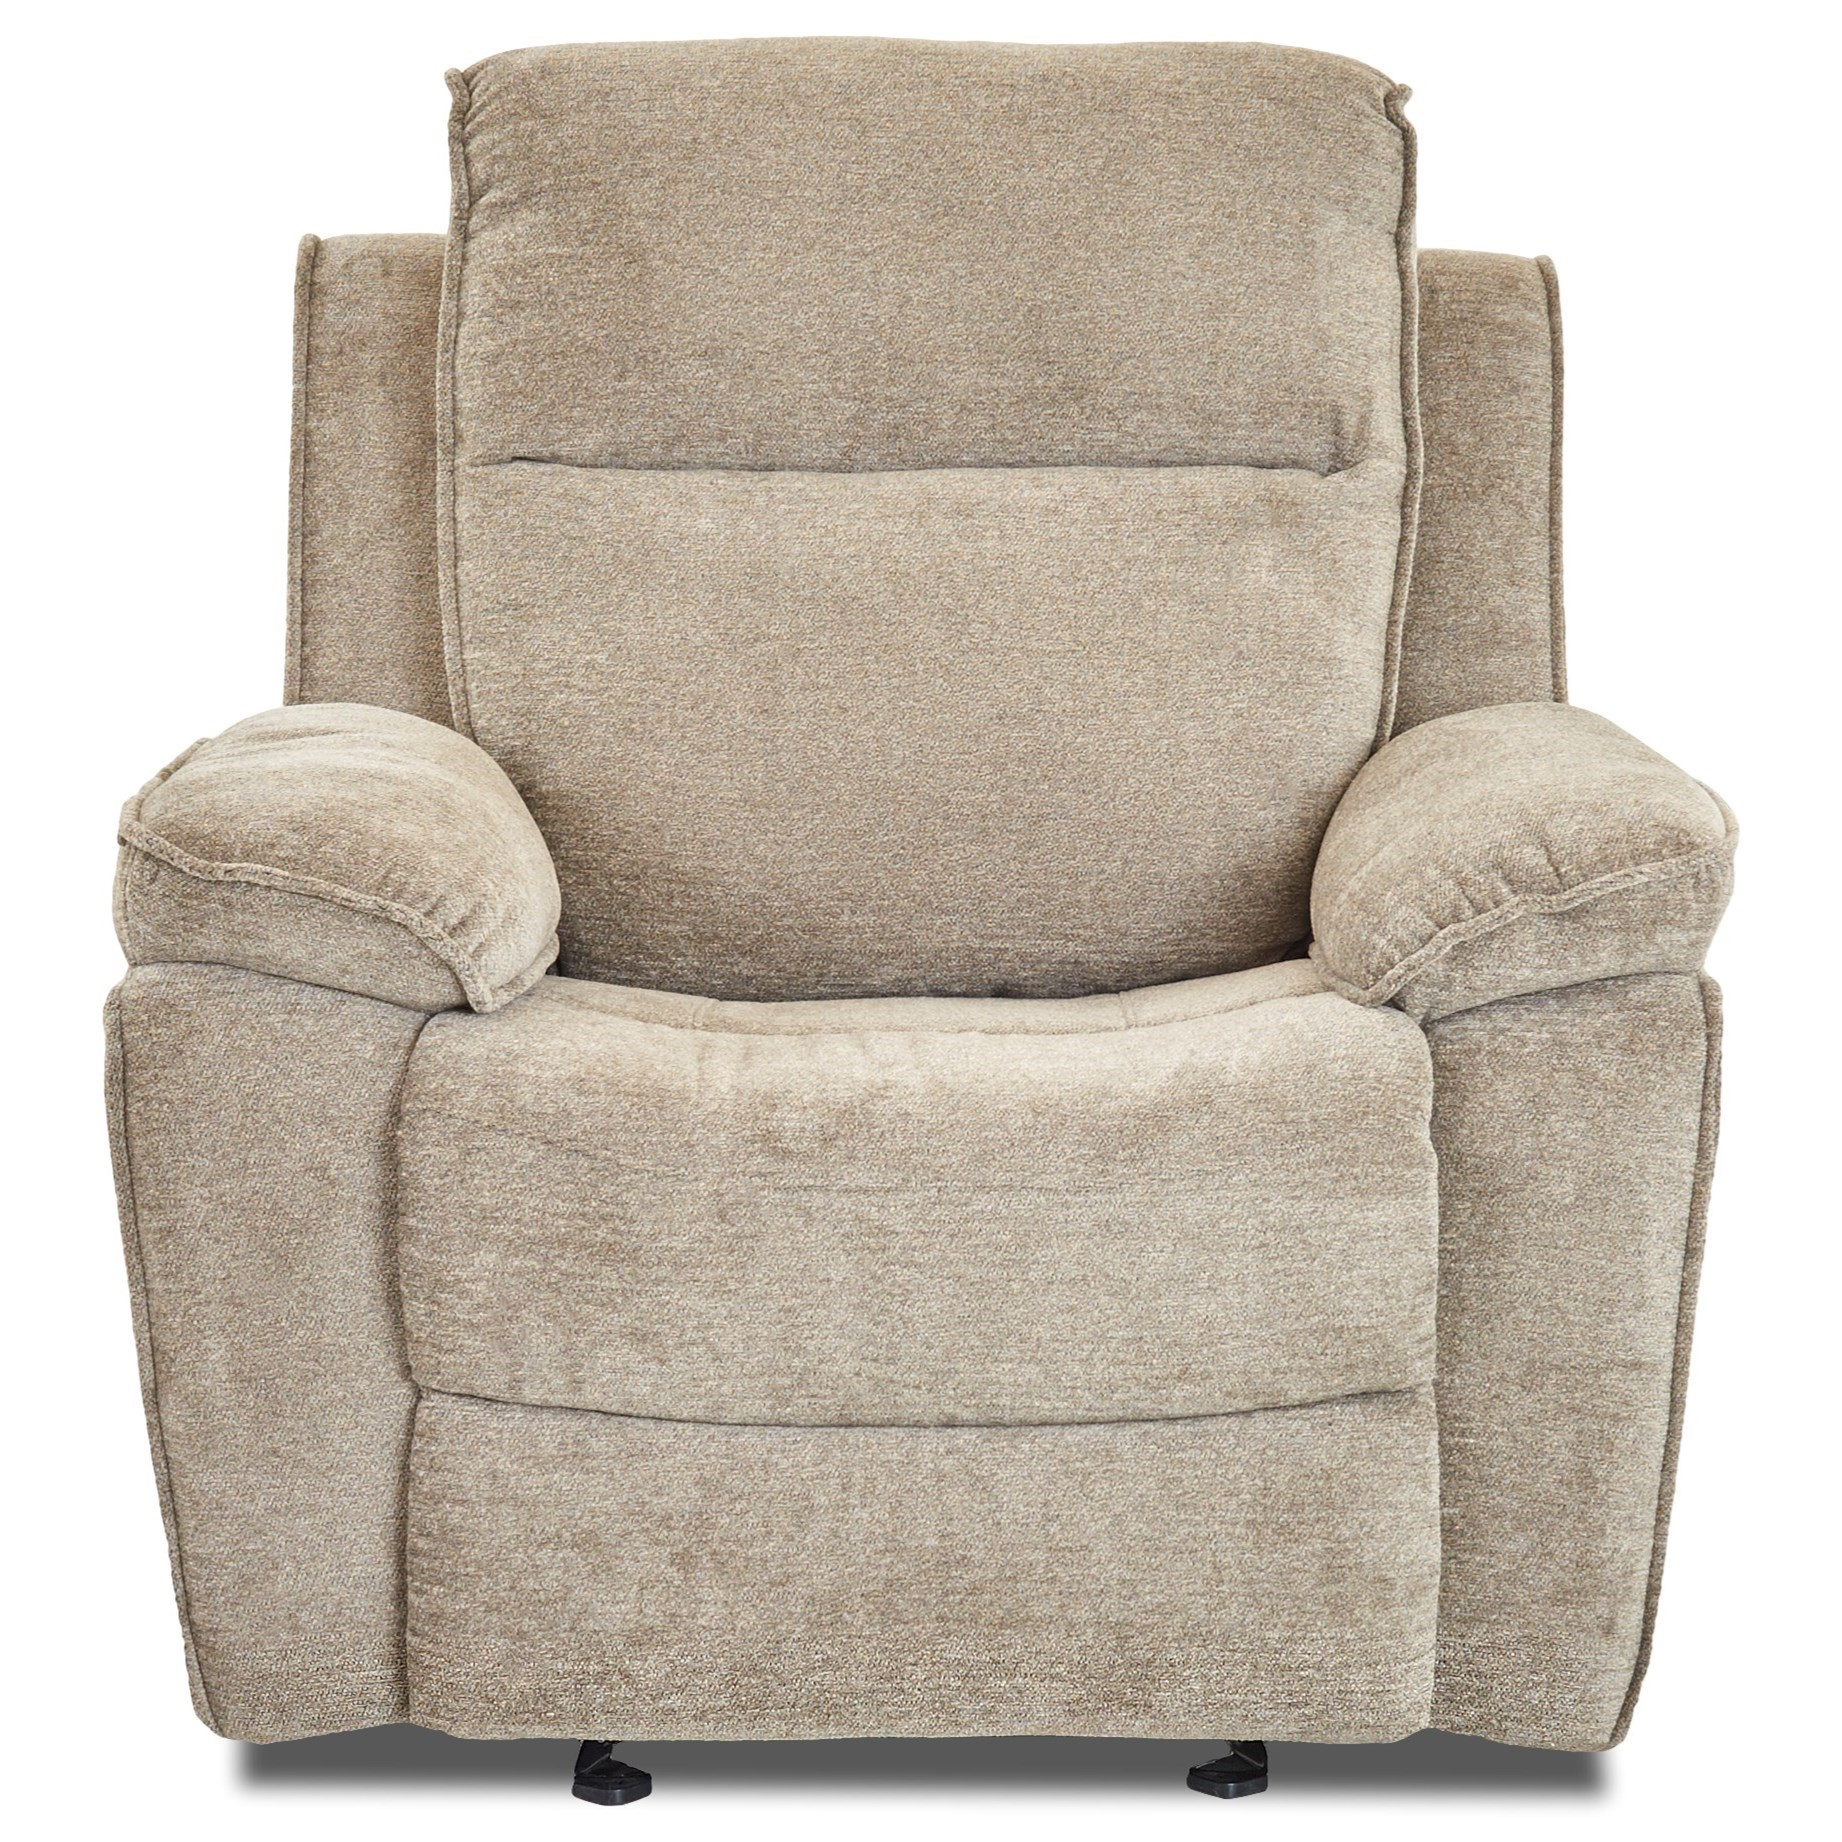 Castaway Casual Swivel Gliding Reclining Chair by Klaussner at H.L. Stephens